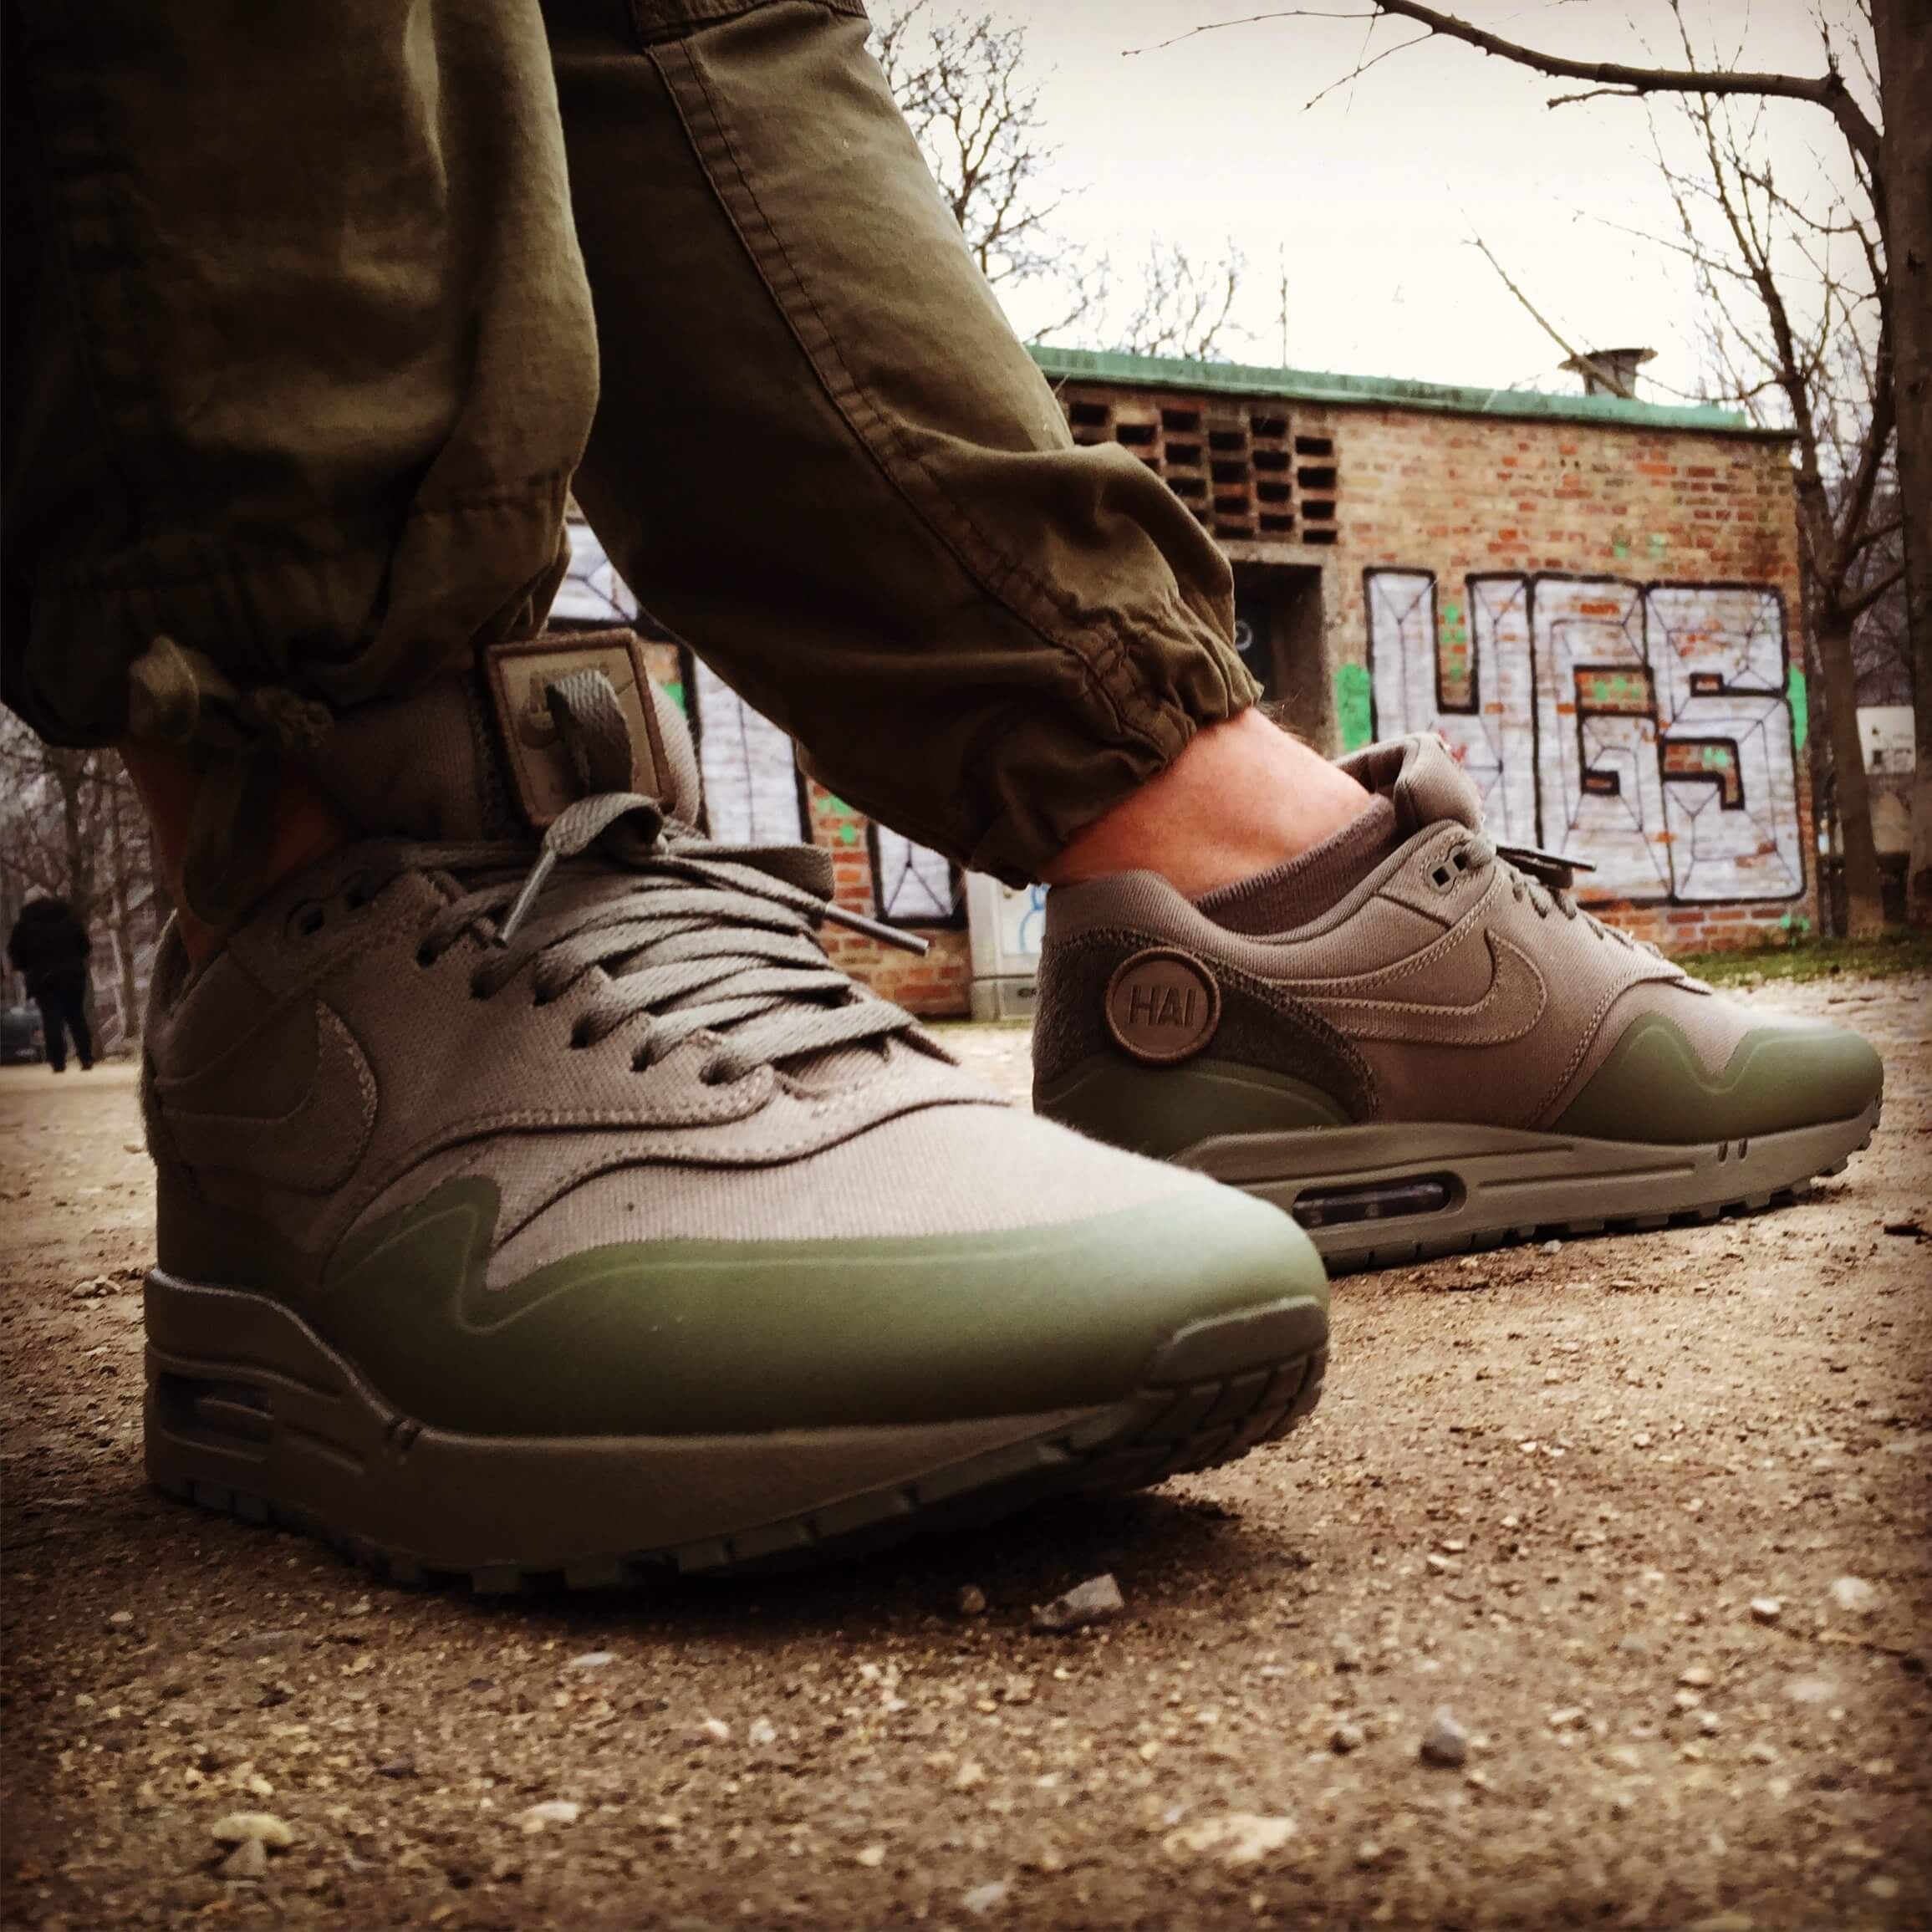 Nike-Air-Max-Patch-Pack-Side-View-2-Benstah-Onfeet